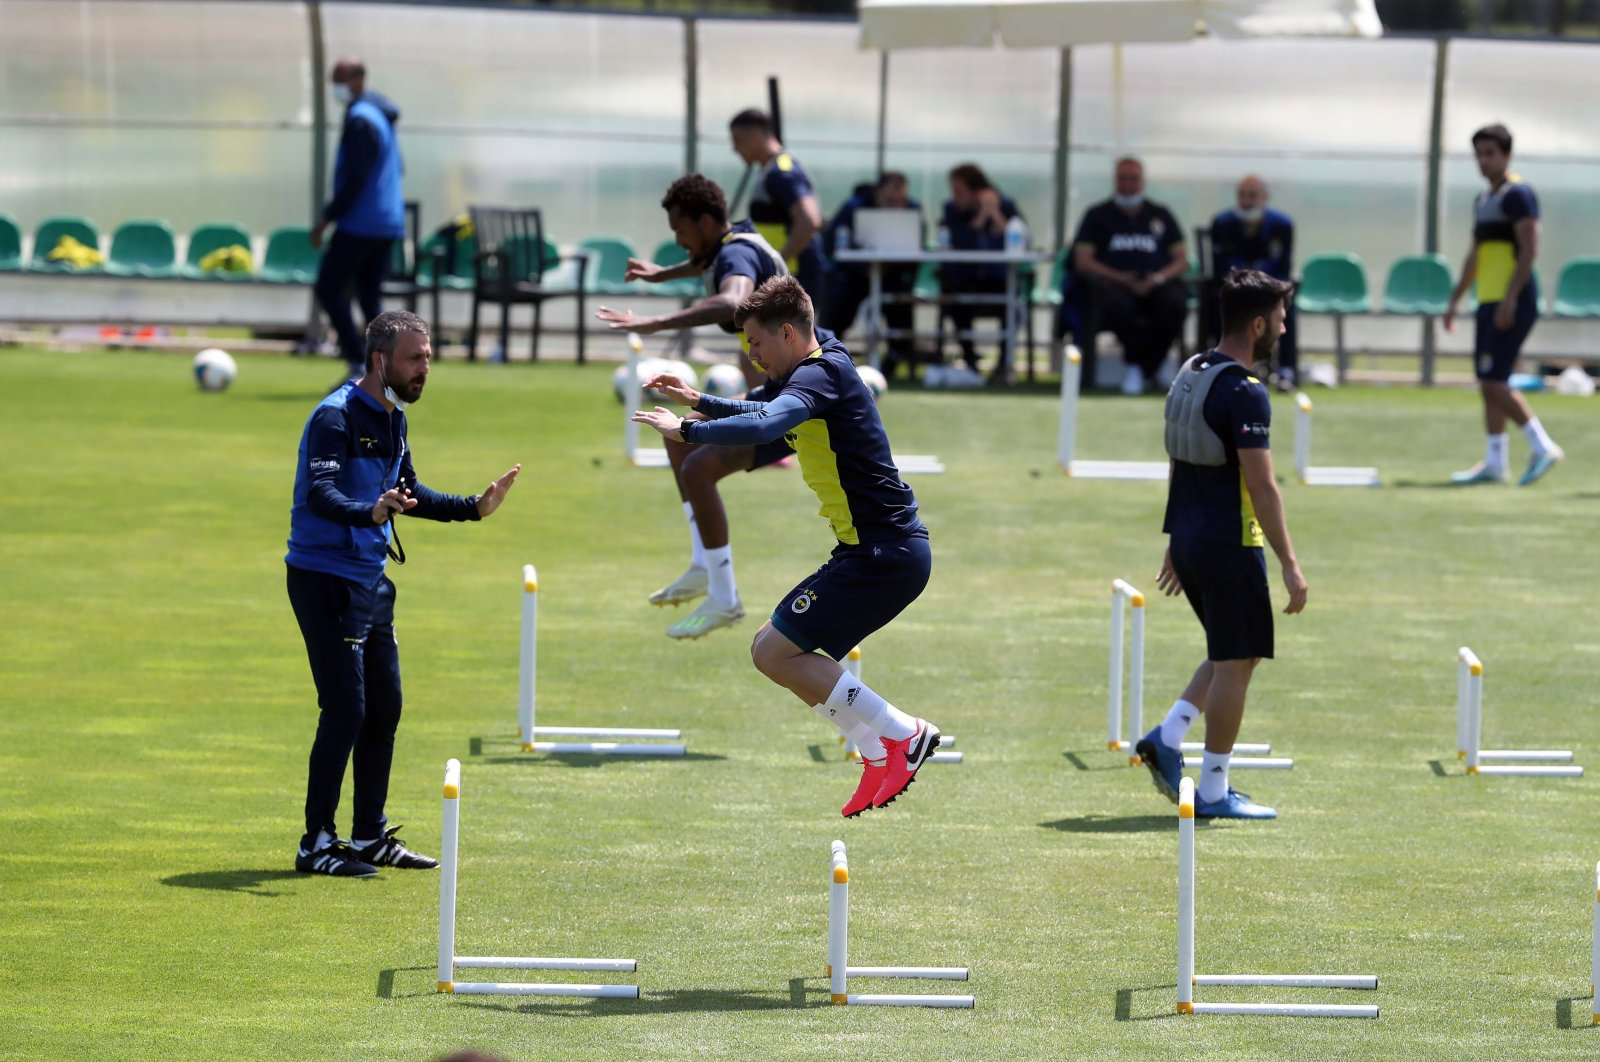 Fenerbahçe players attend a training session in Istanbul, Turkey, June 2, 2020. (İHA Photo)